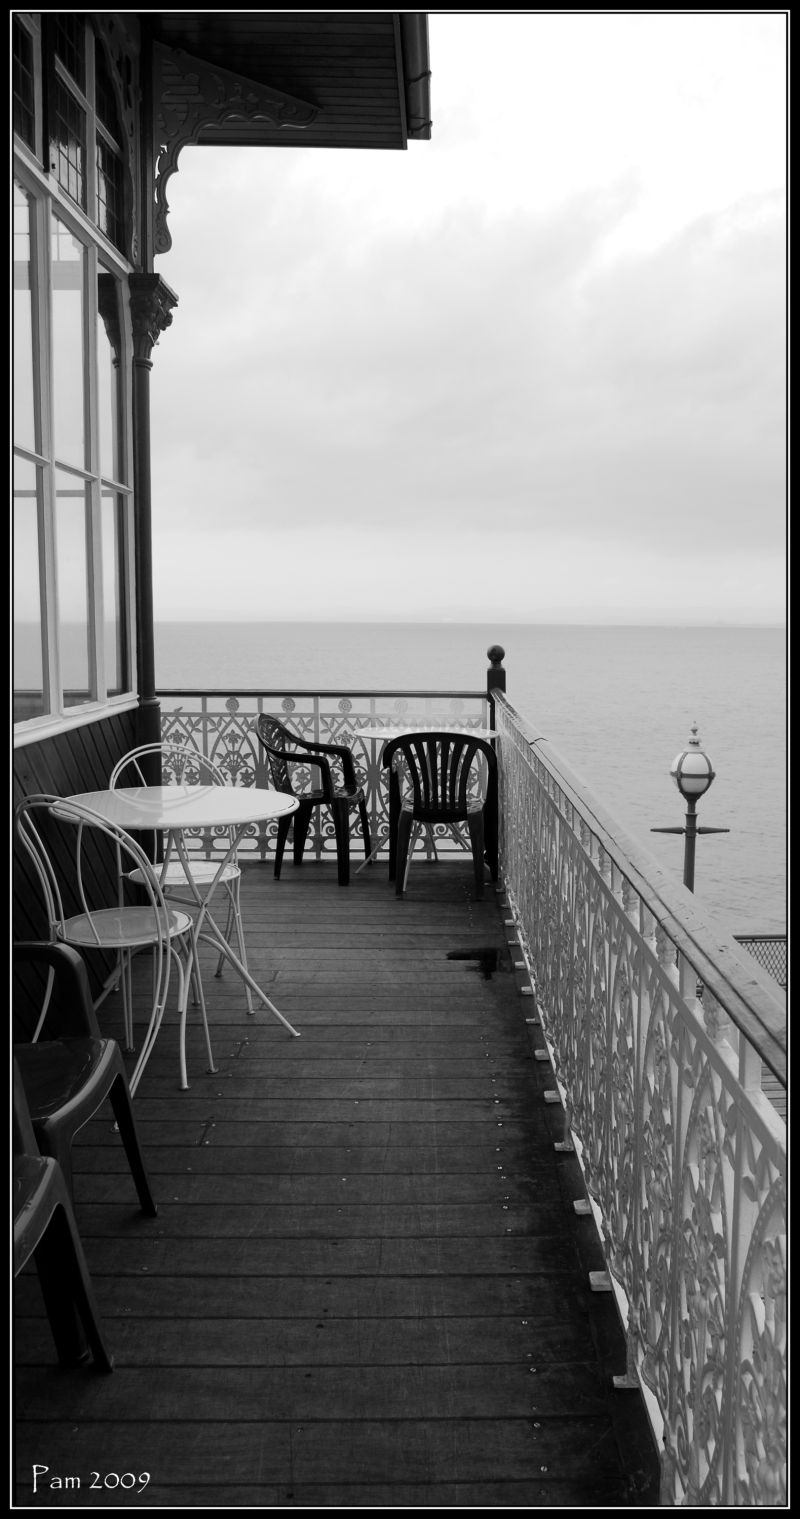 Dining on the pier...........